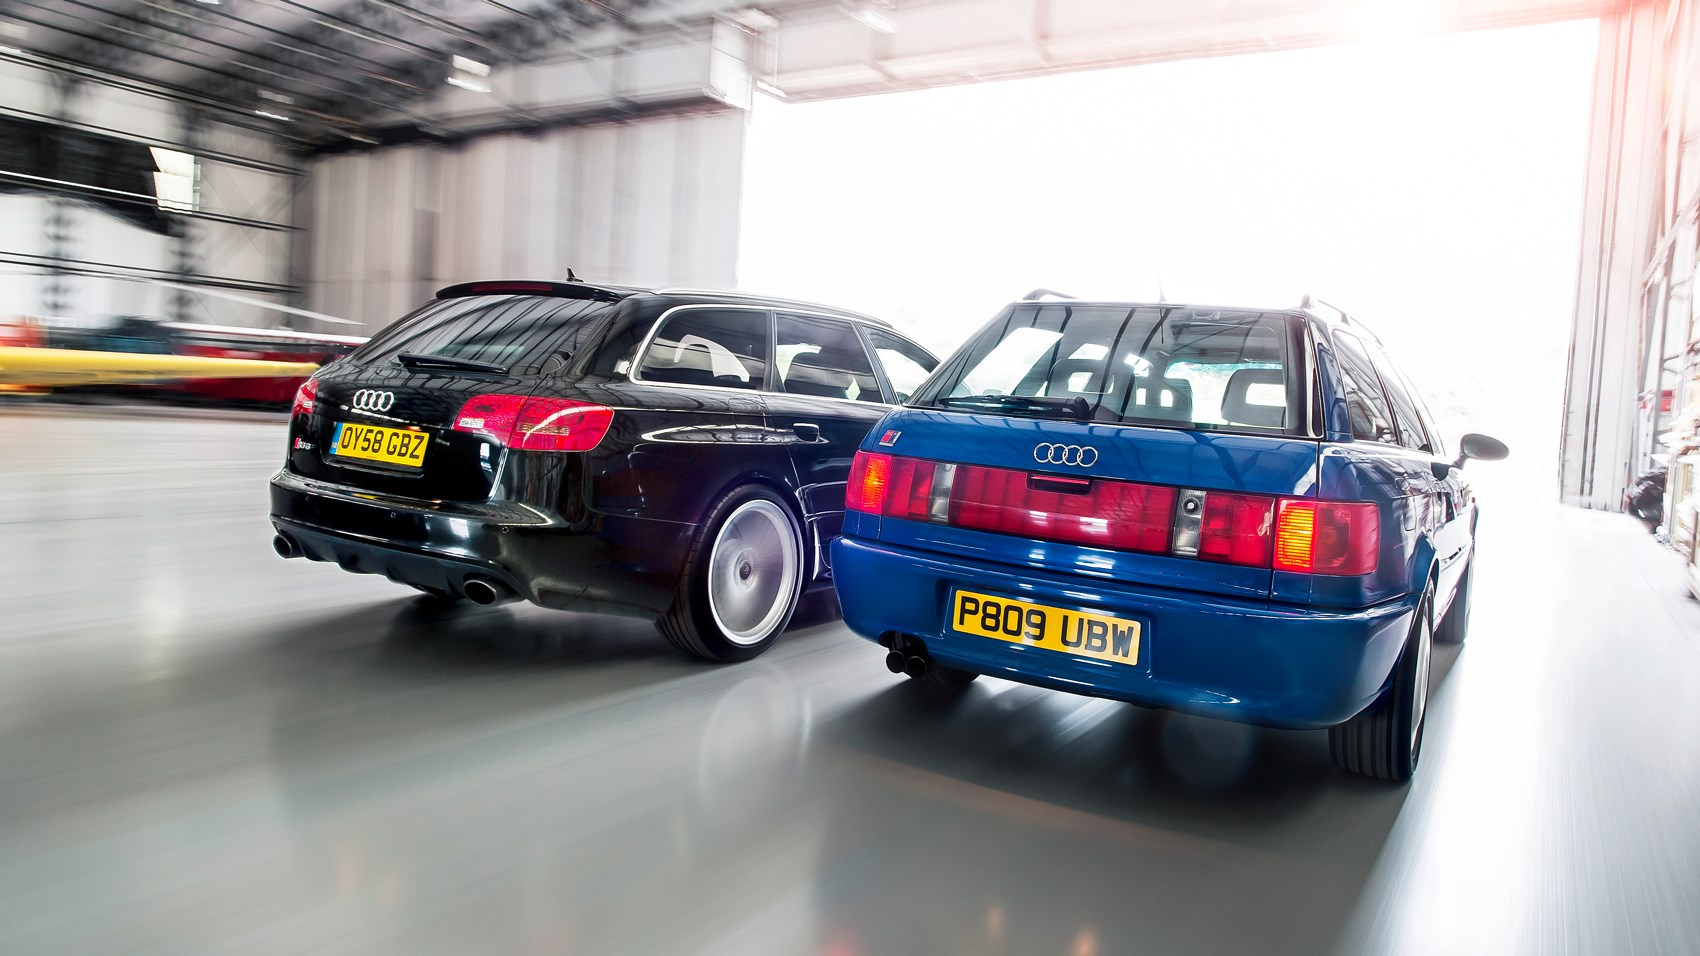 Estate Cars To Make Your Head Spin The 994 Rs2 And 2008 Rs6 Both Family Wagons Turned Brutal Supercars